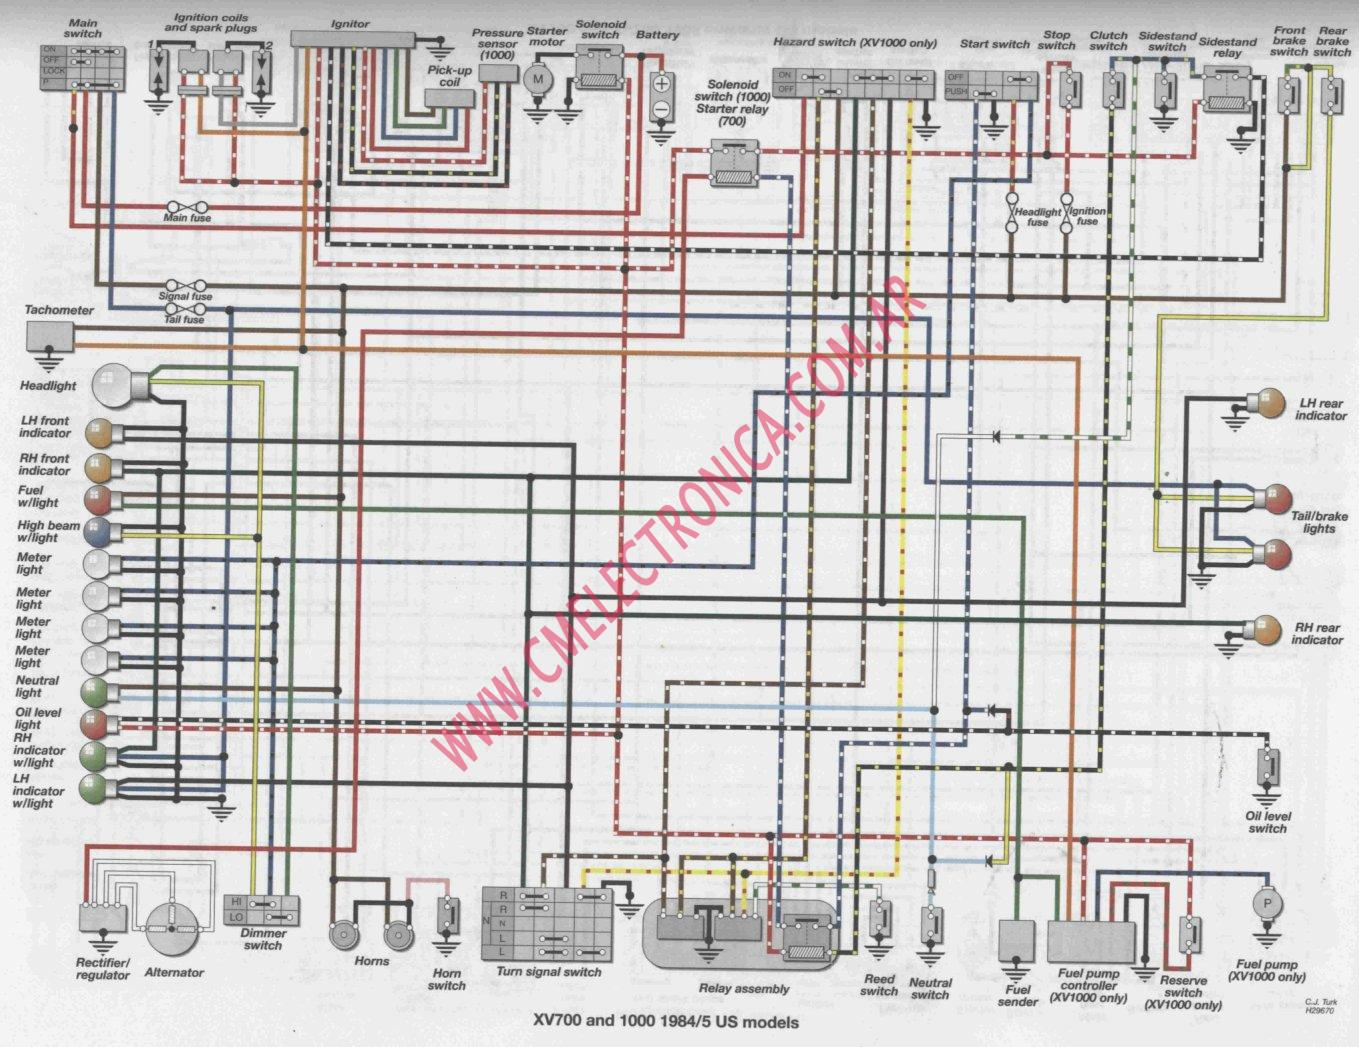 yamaha r1 wiring diagram images wiring diagram yamaha raptor wiring wiring diagrams for automotive